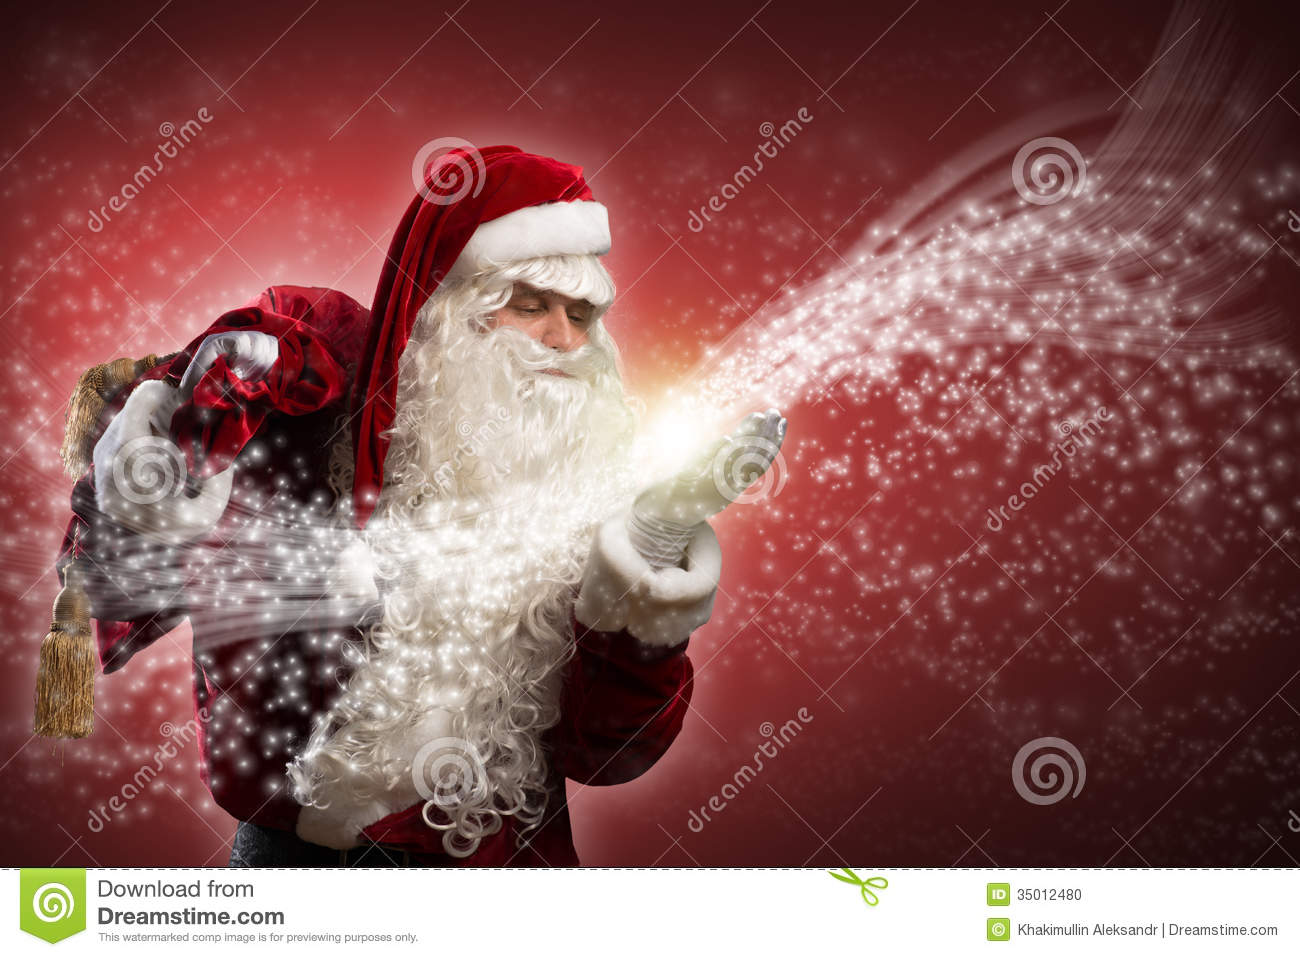 santa claus and the magic stock photo image of magical. Black Bedroom Furniture Sets. Home Design Ideas